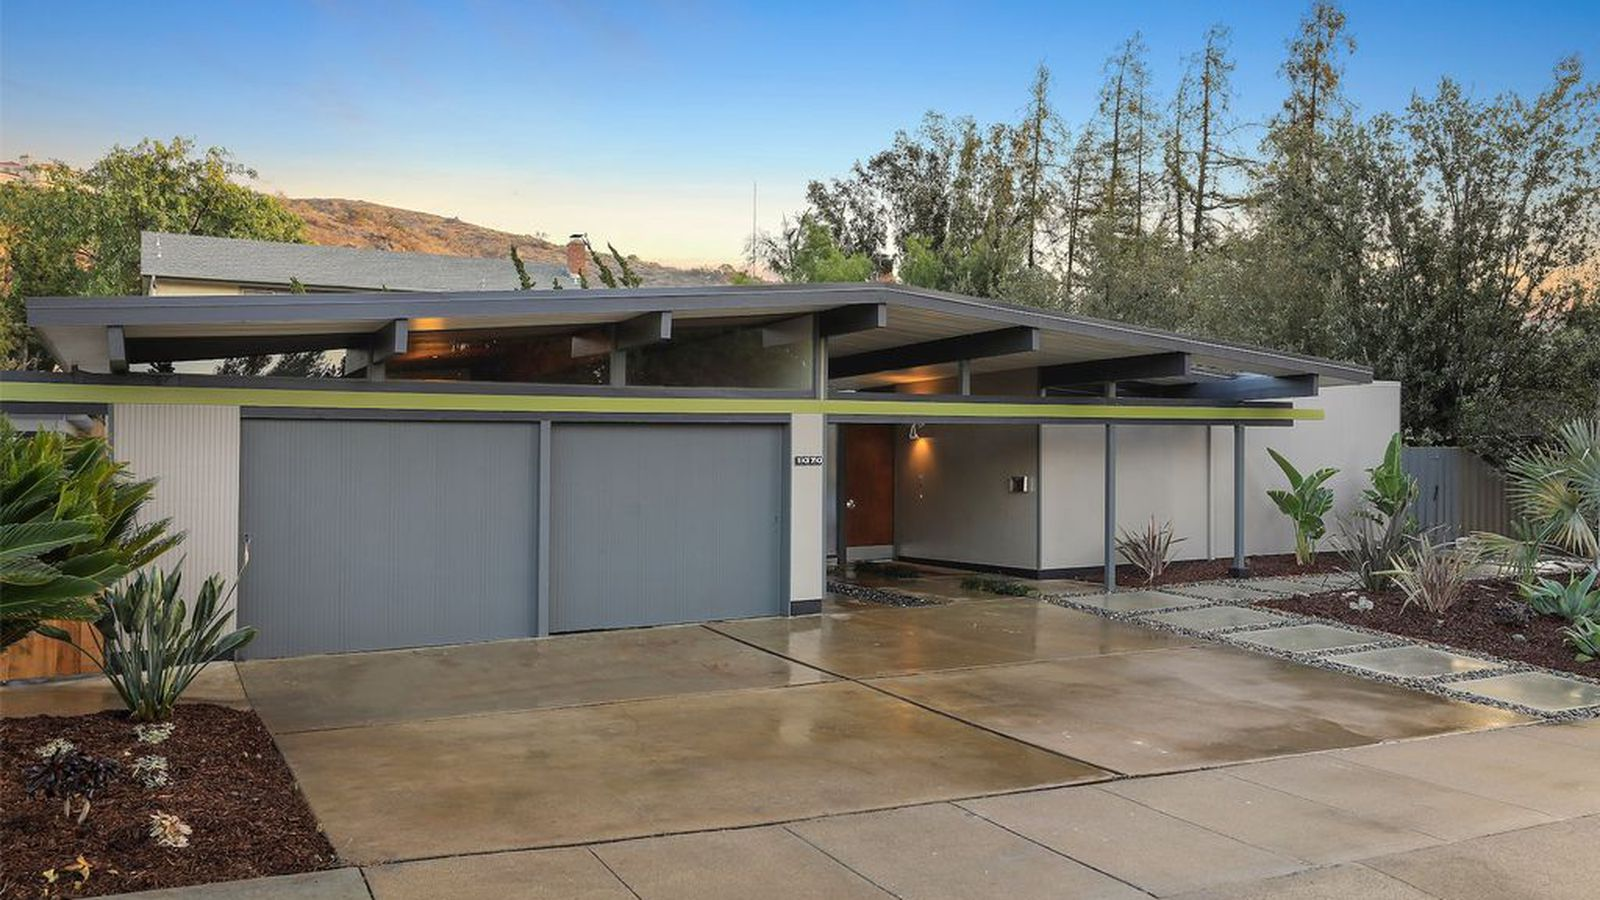 Eichler With Rare Floor Plan Goes On The Market For First